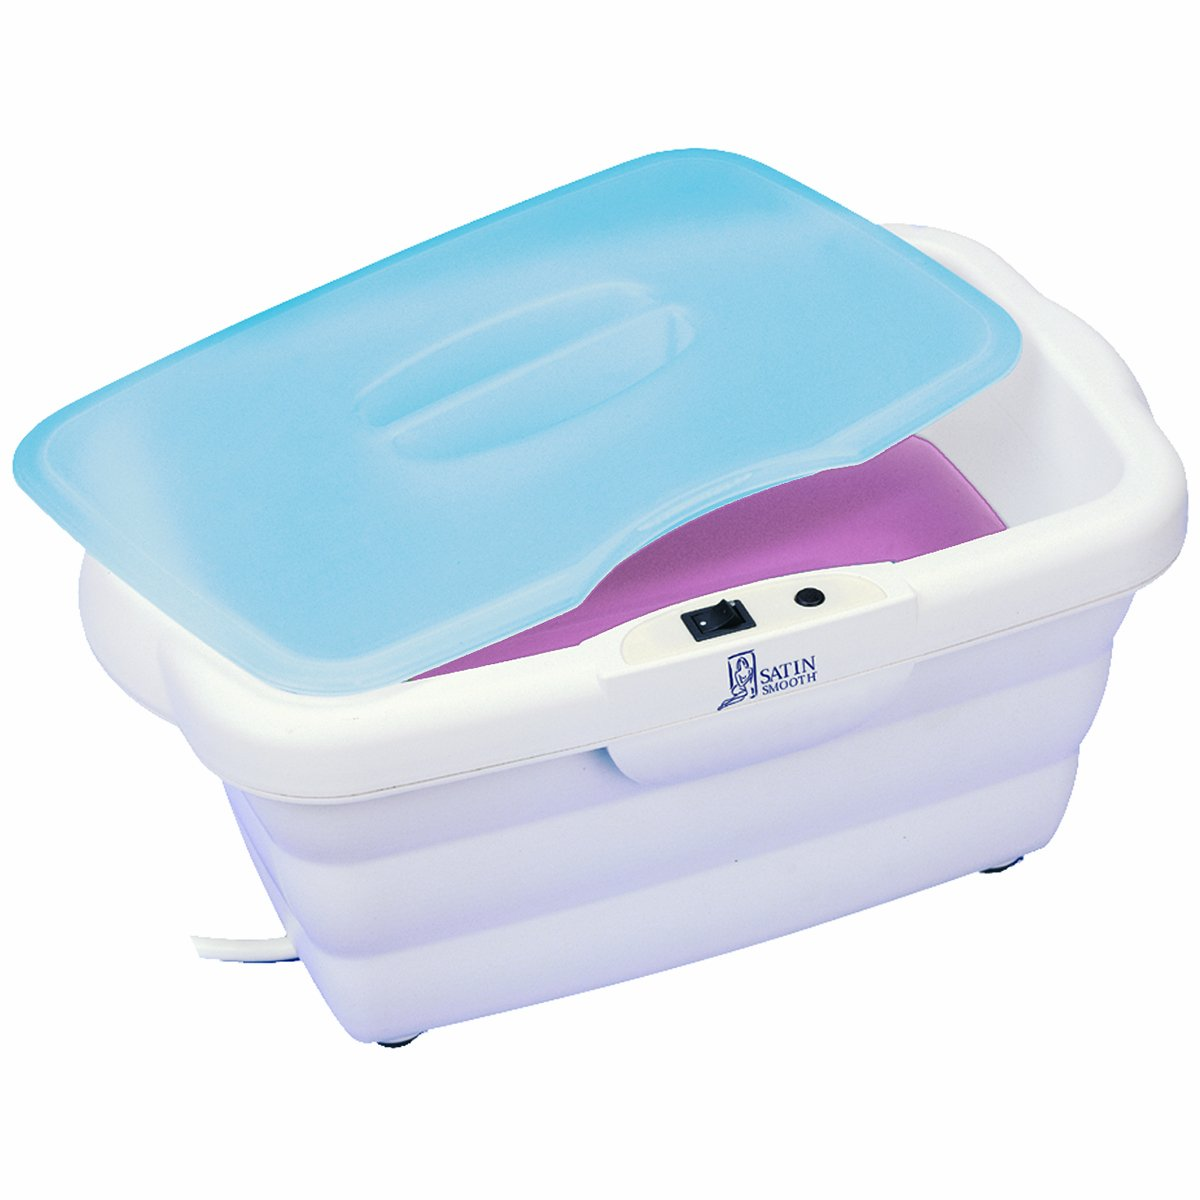 SATIN SMOOTH Paraffin Wax Bath JBPB10C